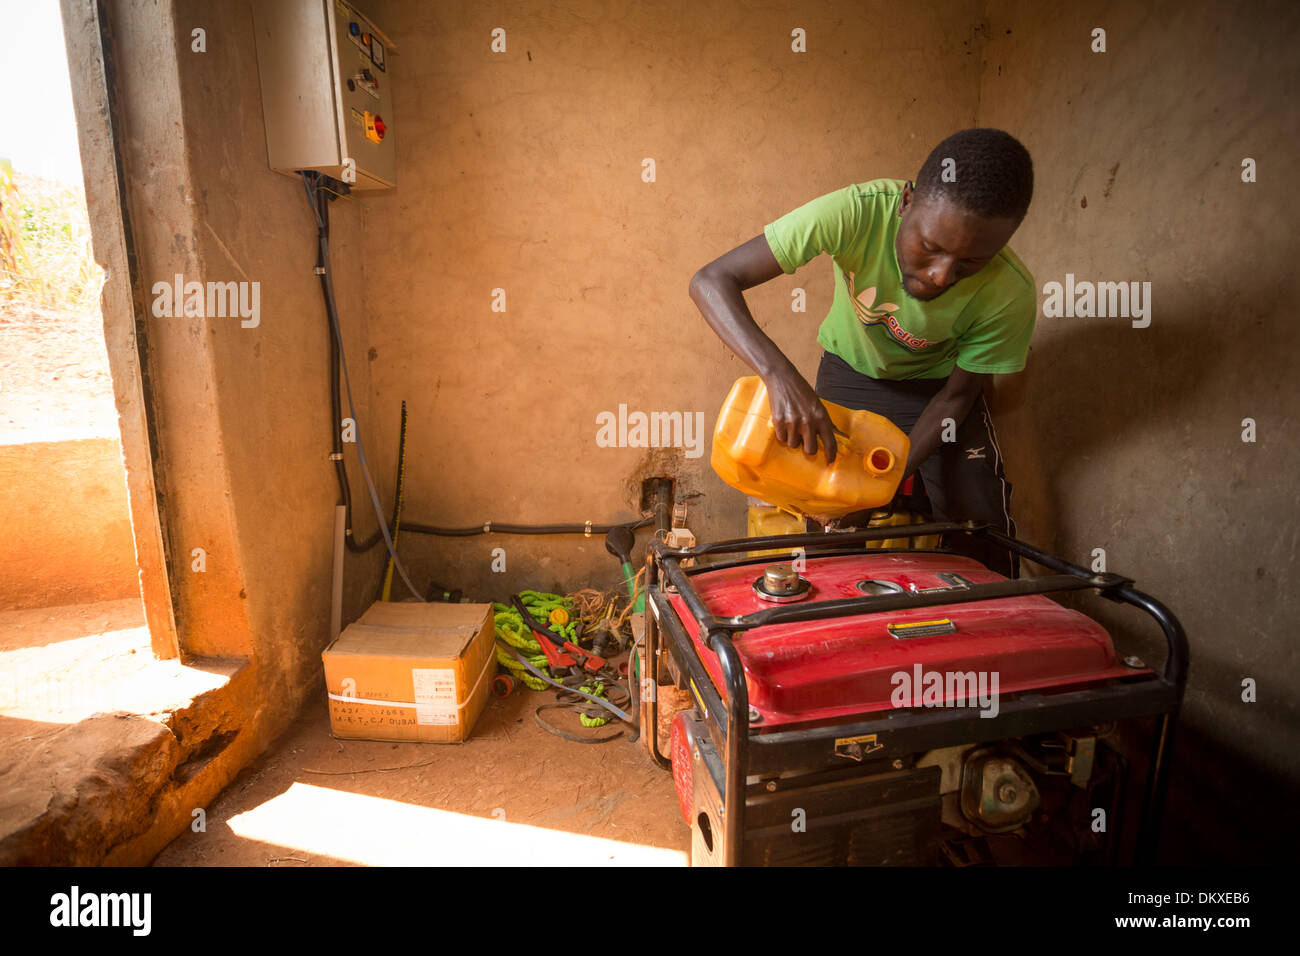 A man fuels a gasoline-powered generator in Gombe, Uganda, East Africa. - Stock Image